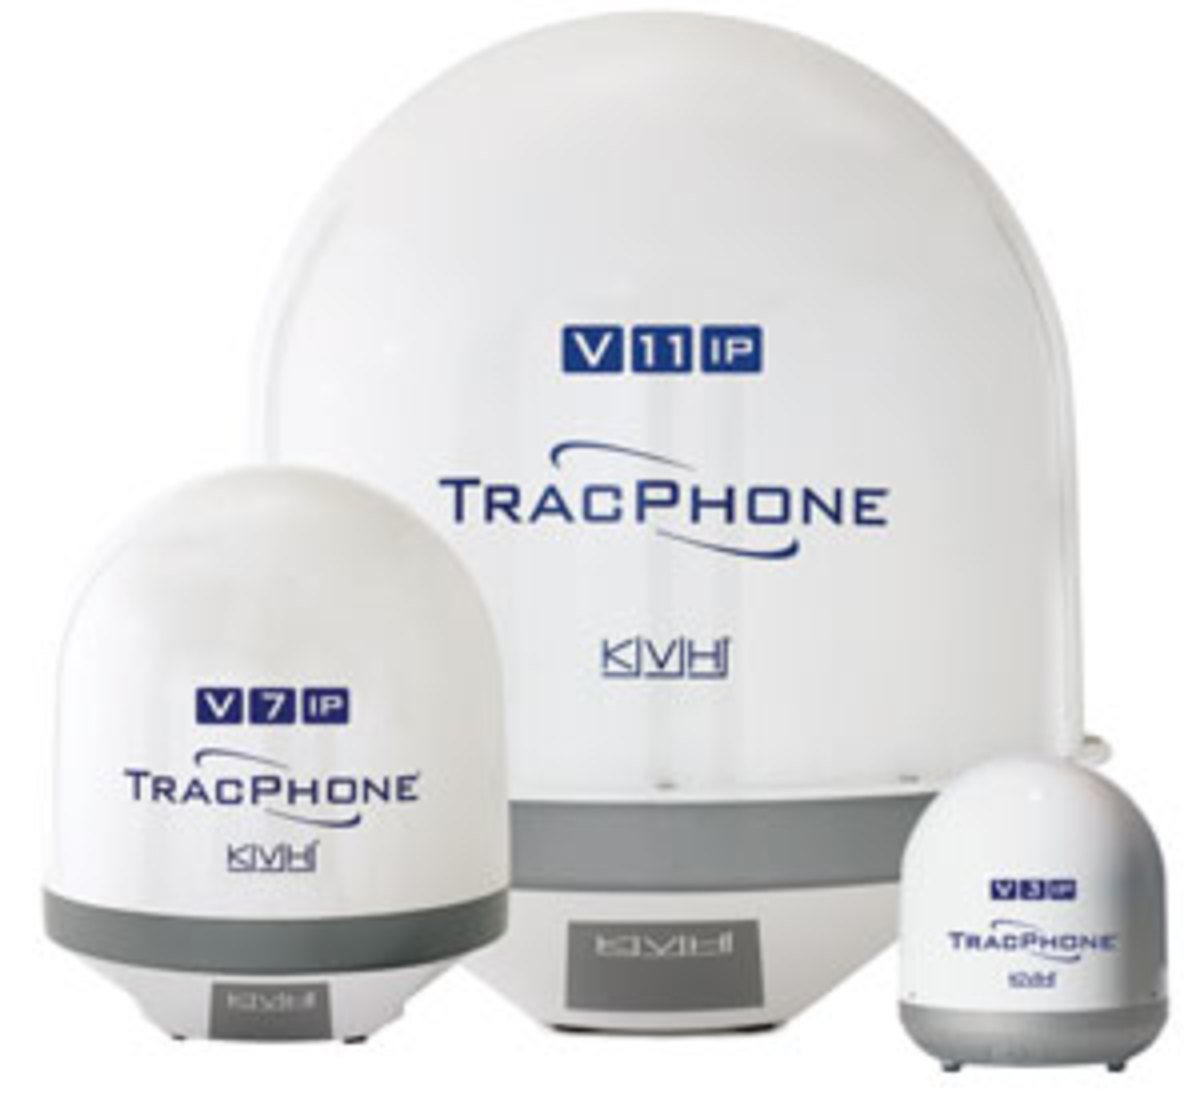 The KVH TracPhone Vip mini-VSAT broadband line offers a dome for nearly any boat size.